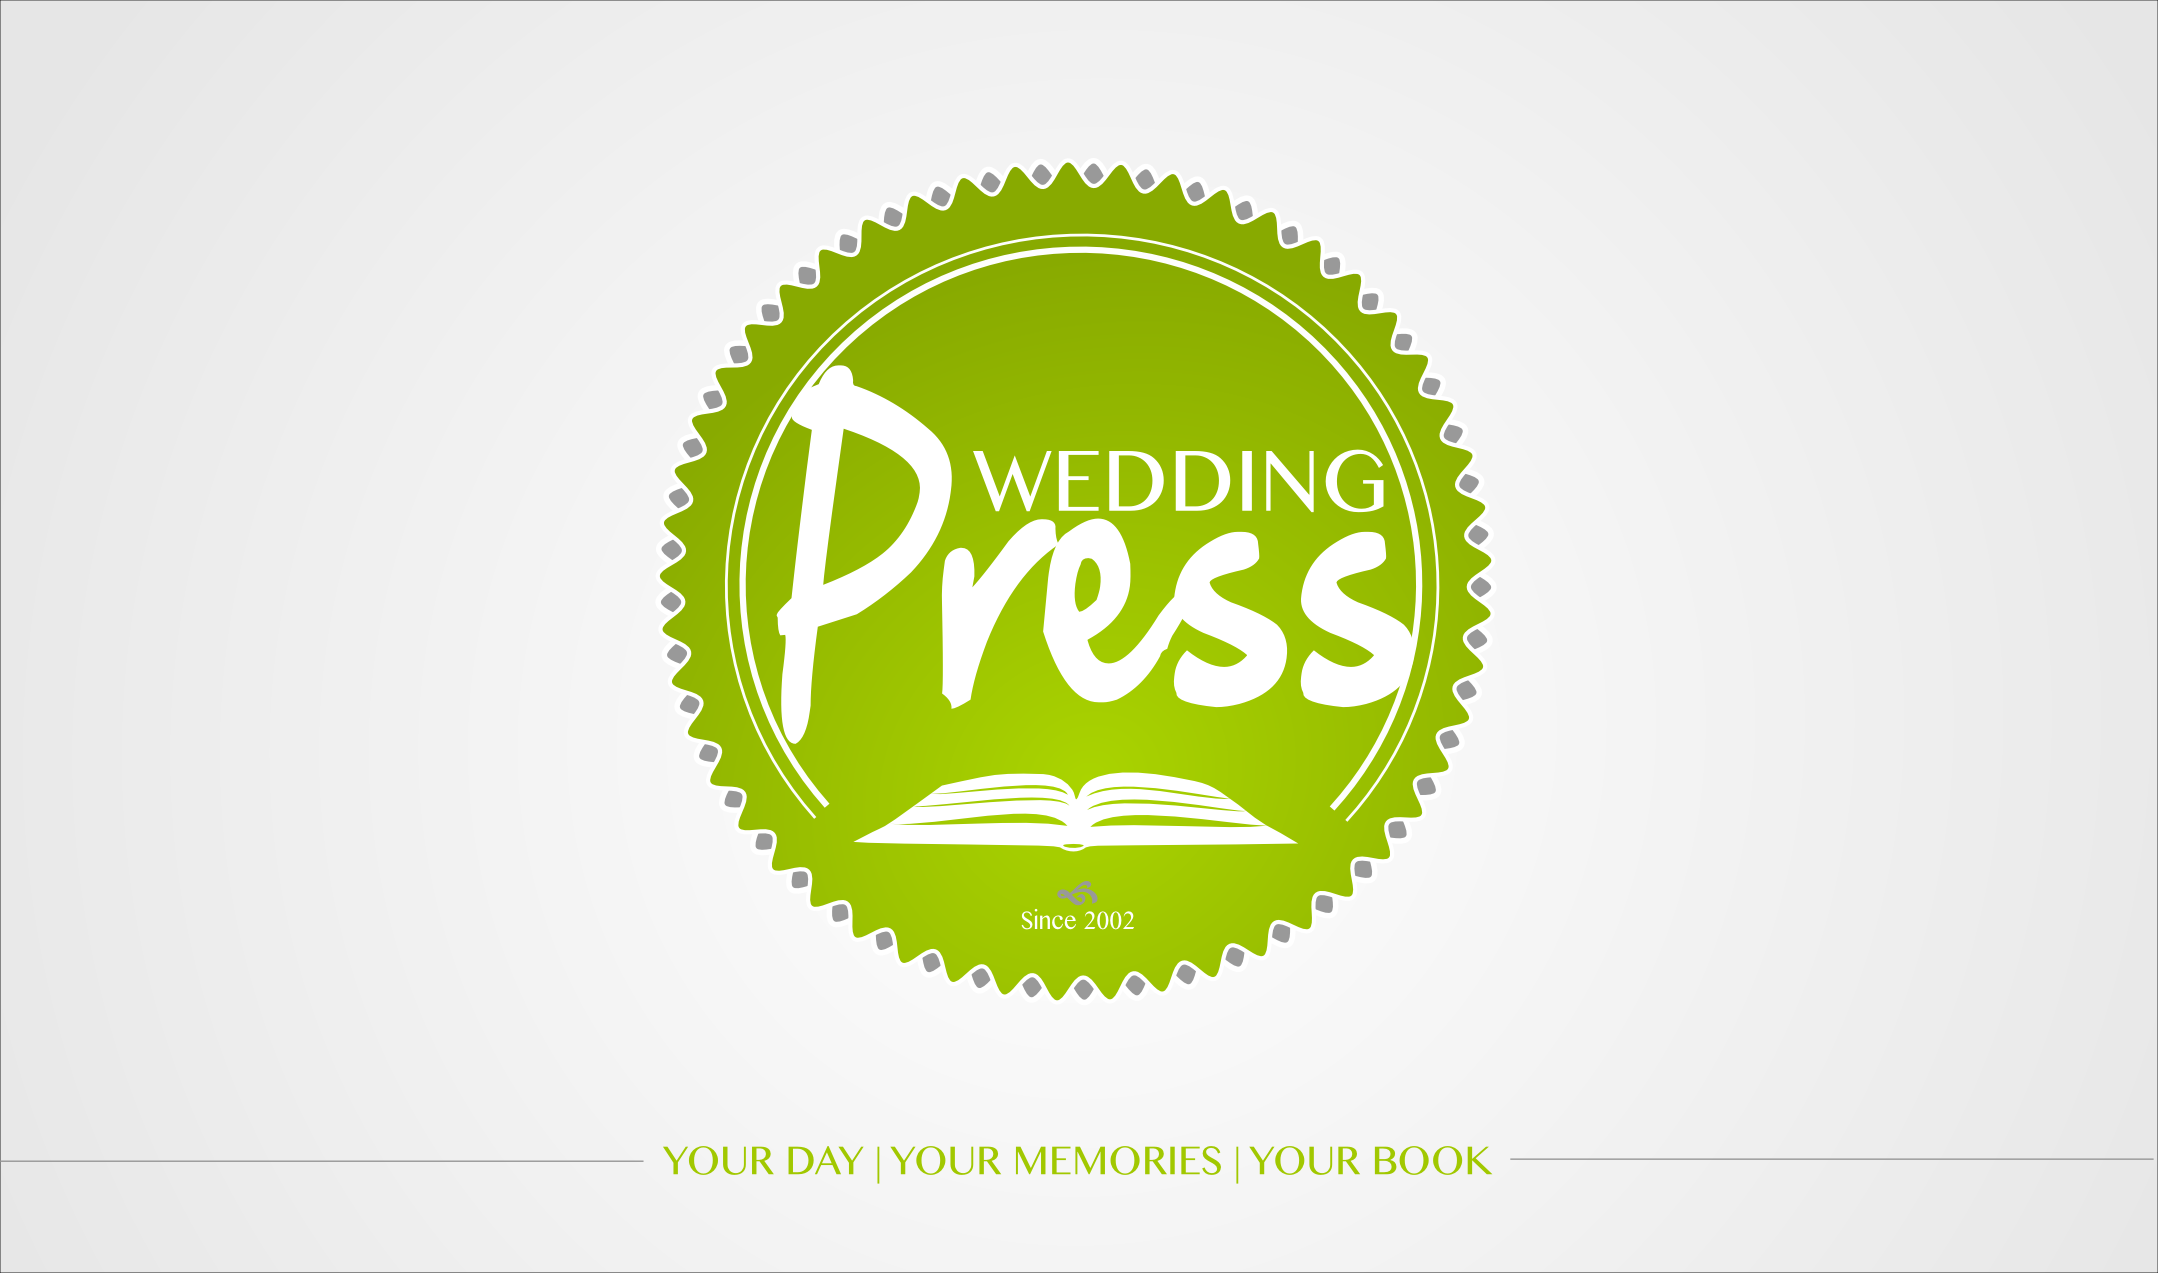 Logo Design by Andrew Bertram - Entry No. 77 in the Logo Design Contest Wedding Writes Logo Design.